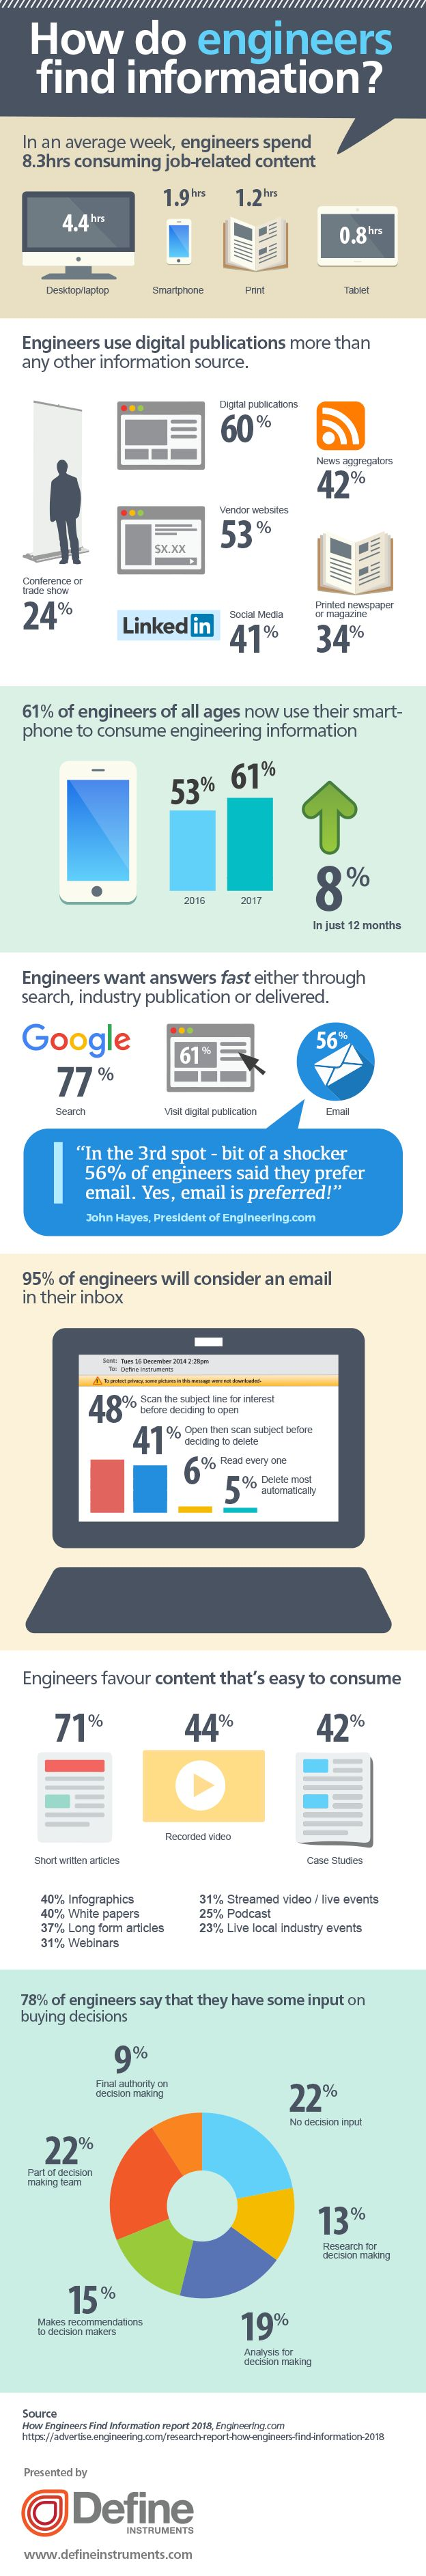 How Engineers Find Information (infographic)